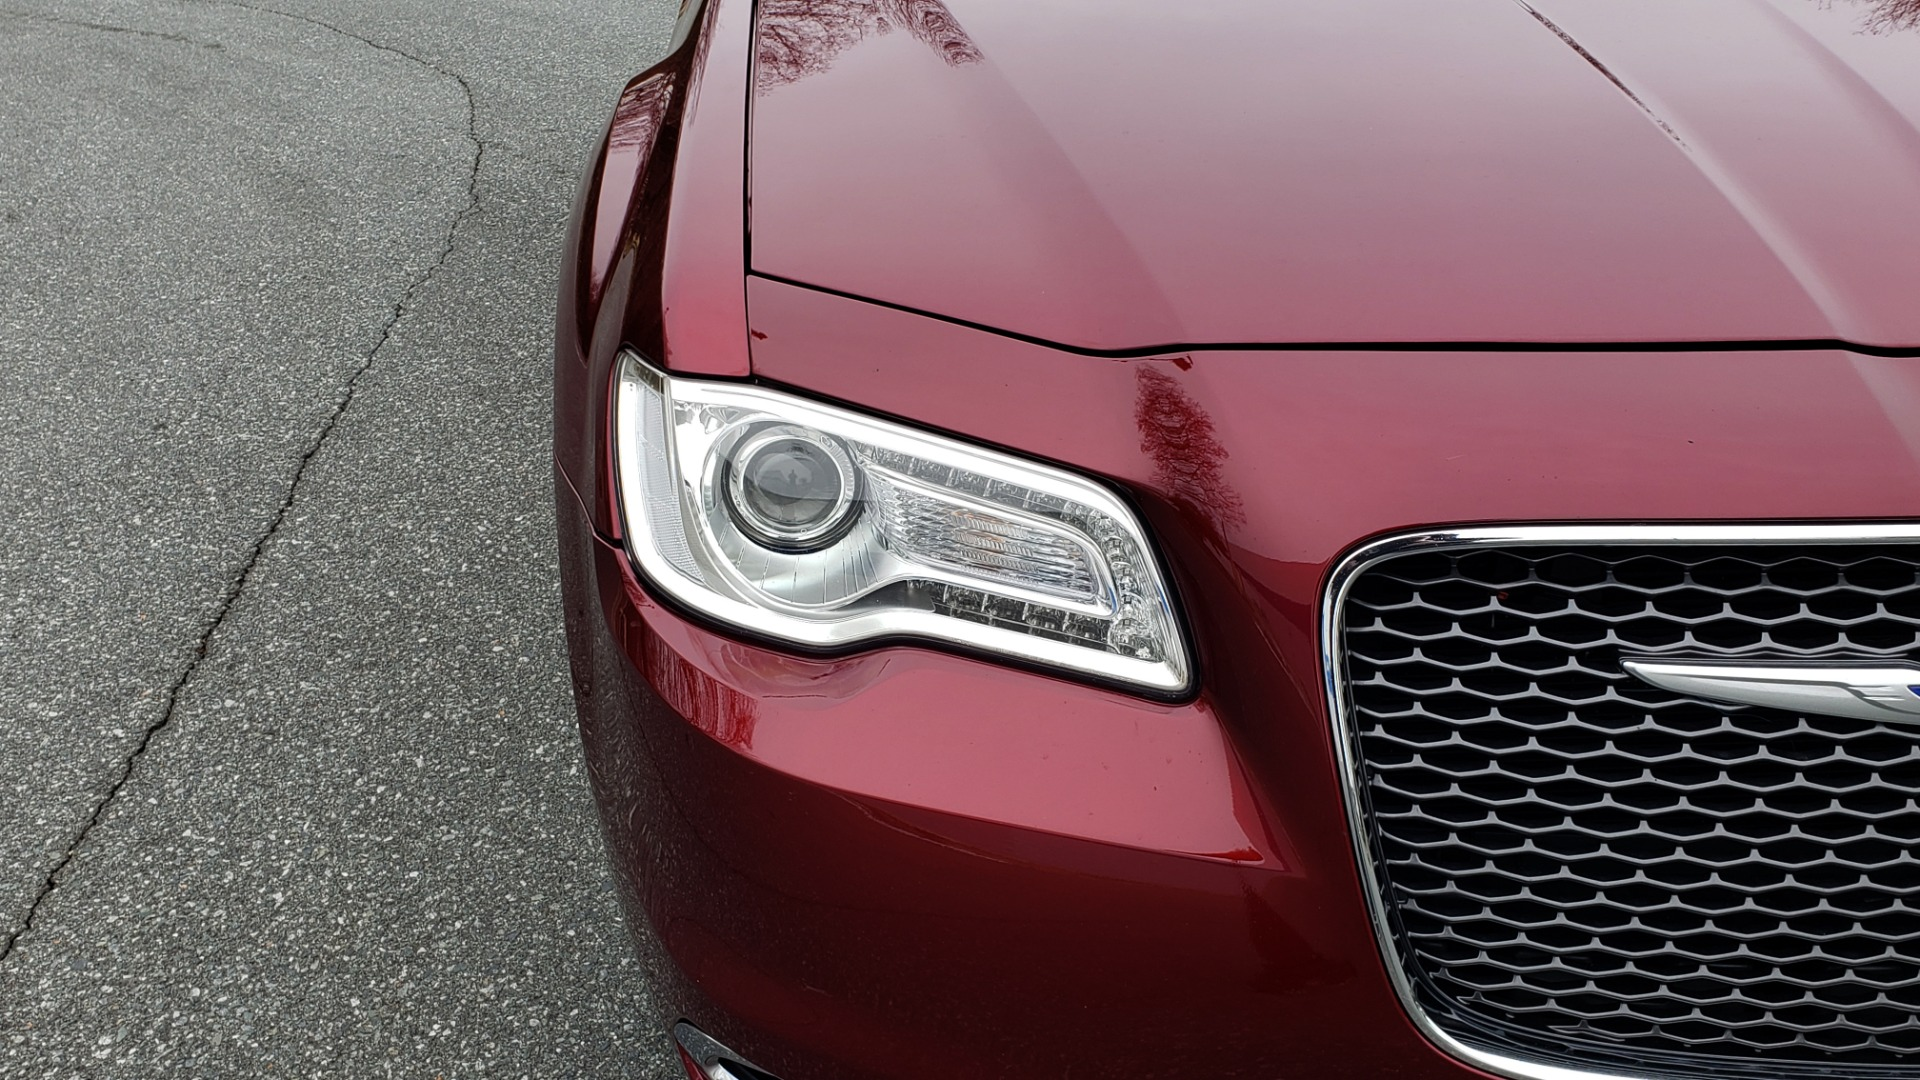 Used 2019 Chrysler 300 LIMITED / 3.6L V6 / 8-SPD AUTO / LEATHER / REARVIEW for sale Sold at Formula Imports in Charlotte NC 28227 26